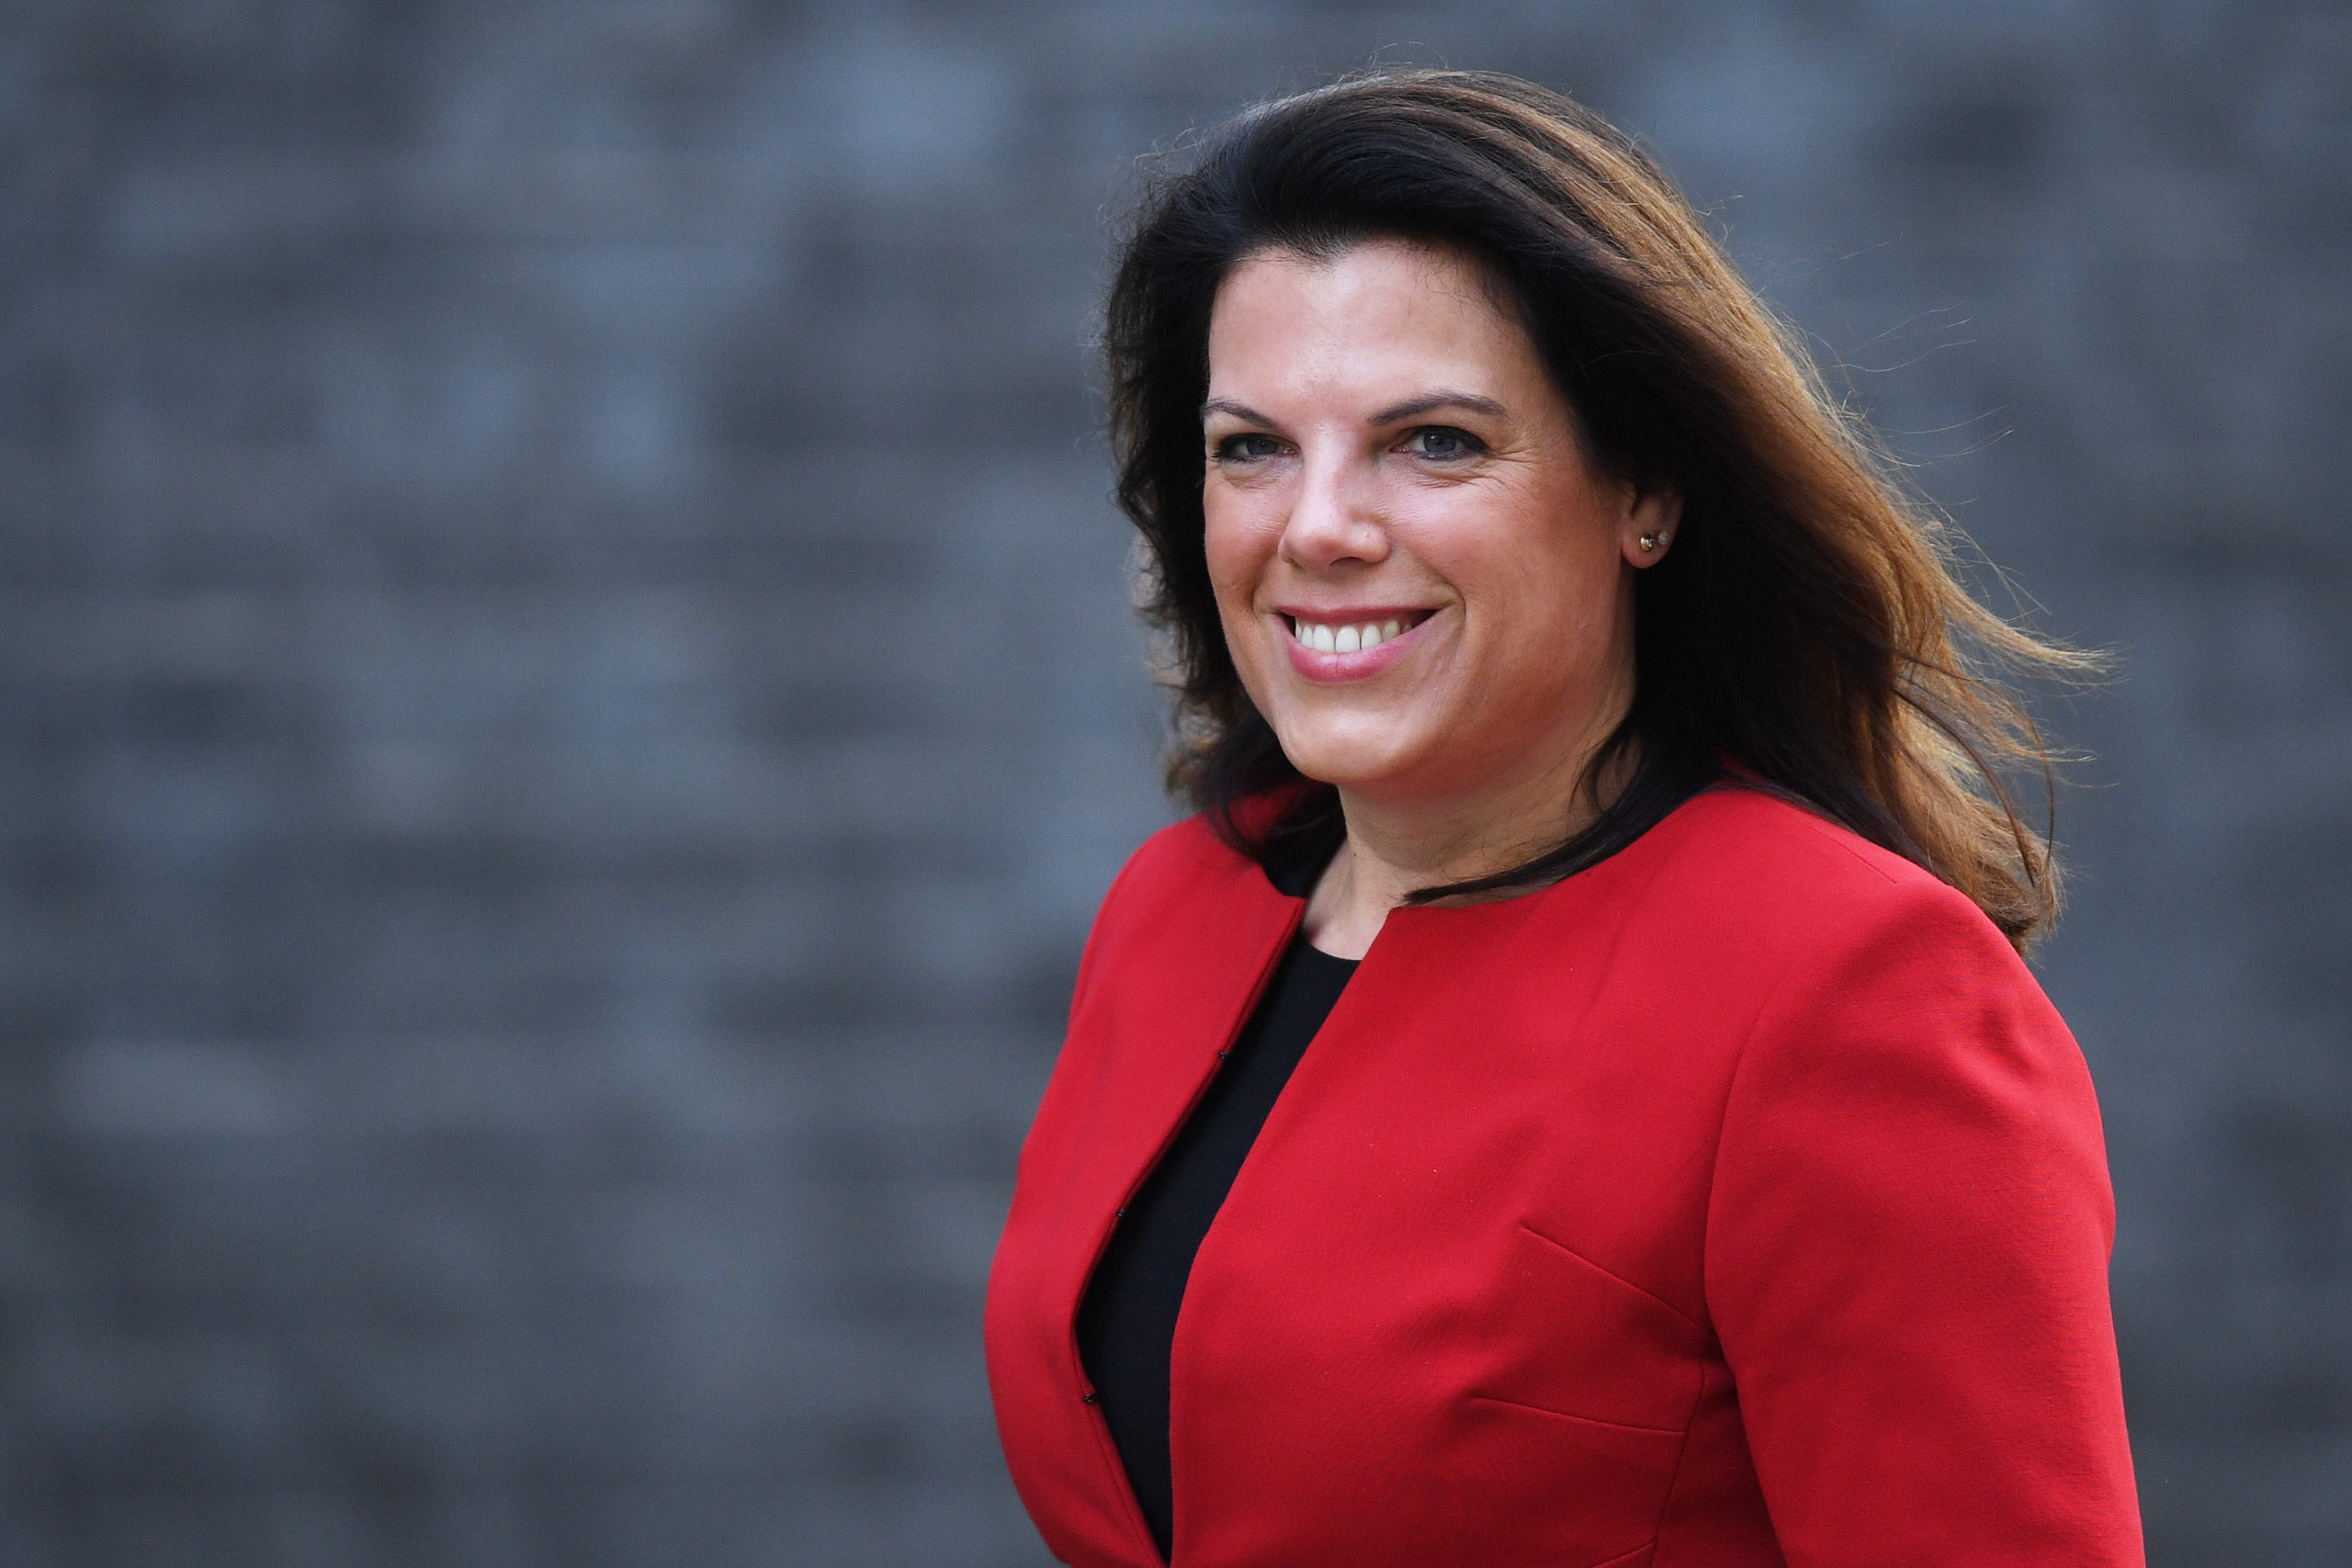 Caroline Nokes arrives at Downing Street on March 26, 2019 in London, England.